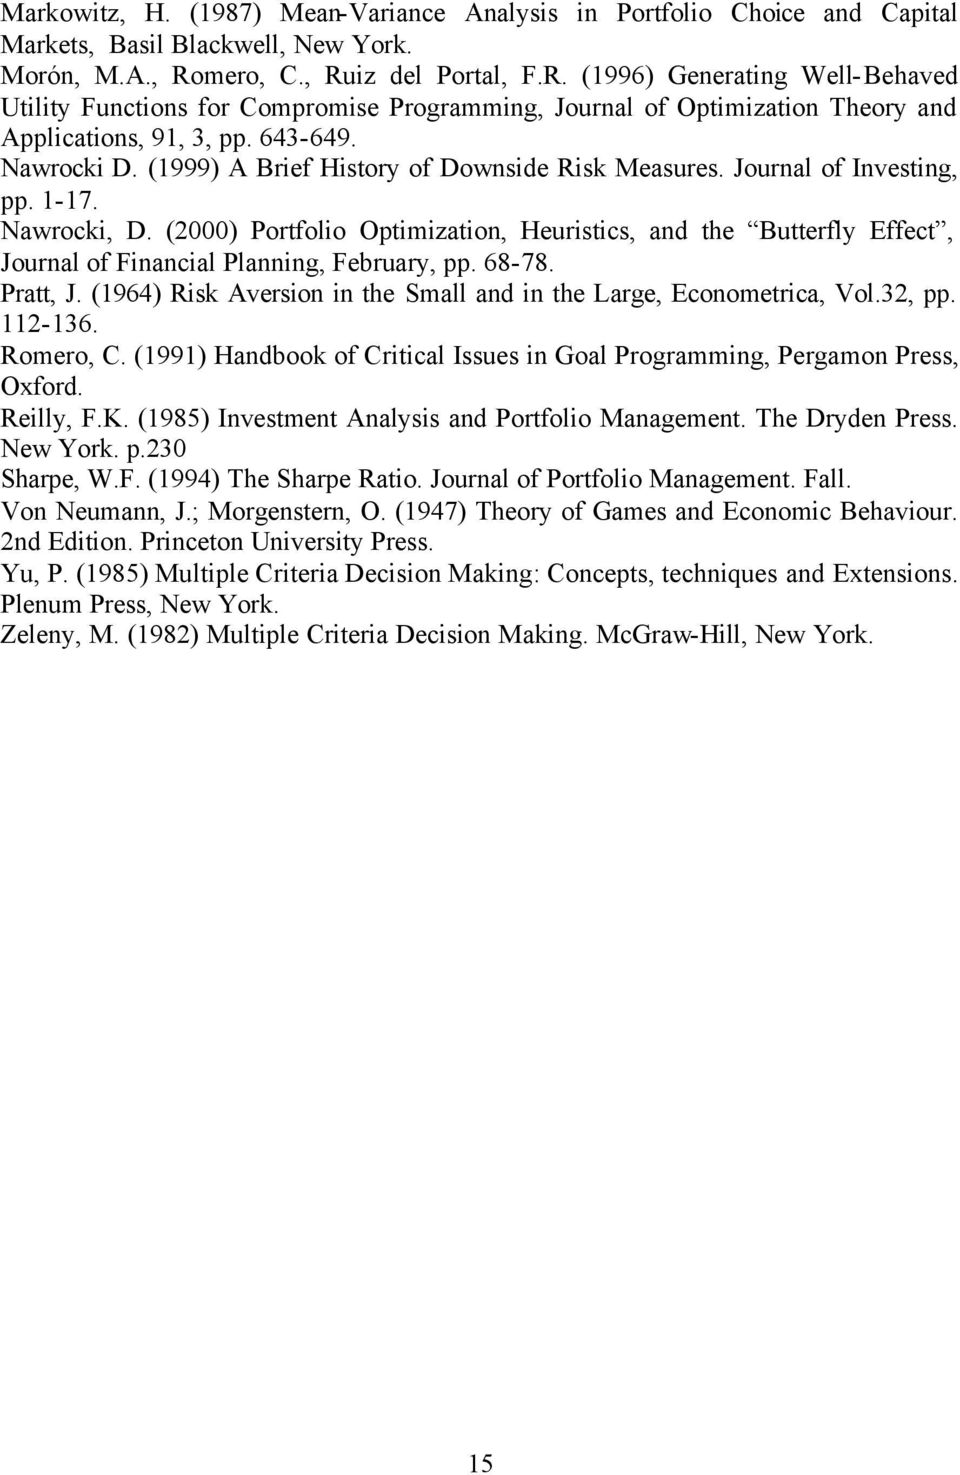 (999) A Brief History of Downside Risk Measures. Journal of Investing, pp. -7. Nawrocki, D.